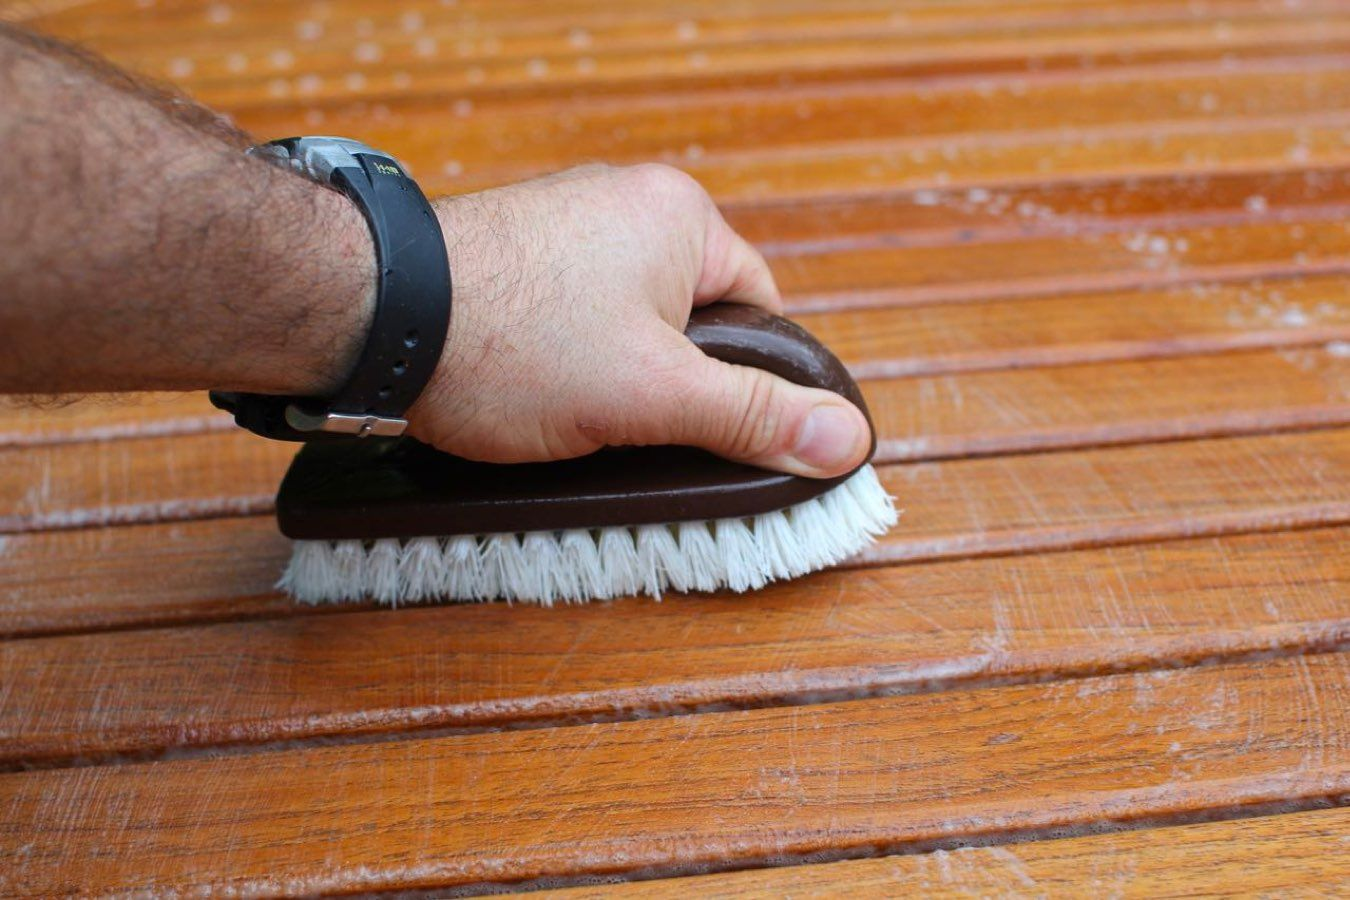 Man scrubbing teak wood after learning how to clean patio furniture